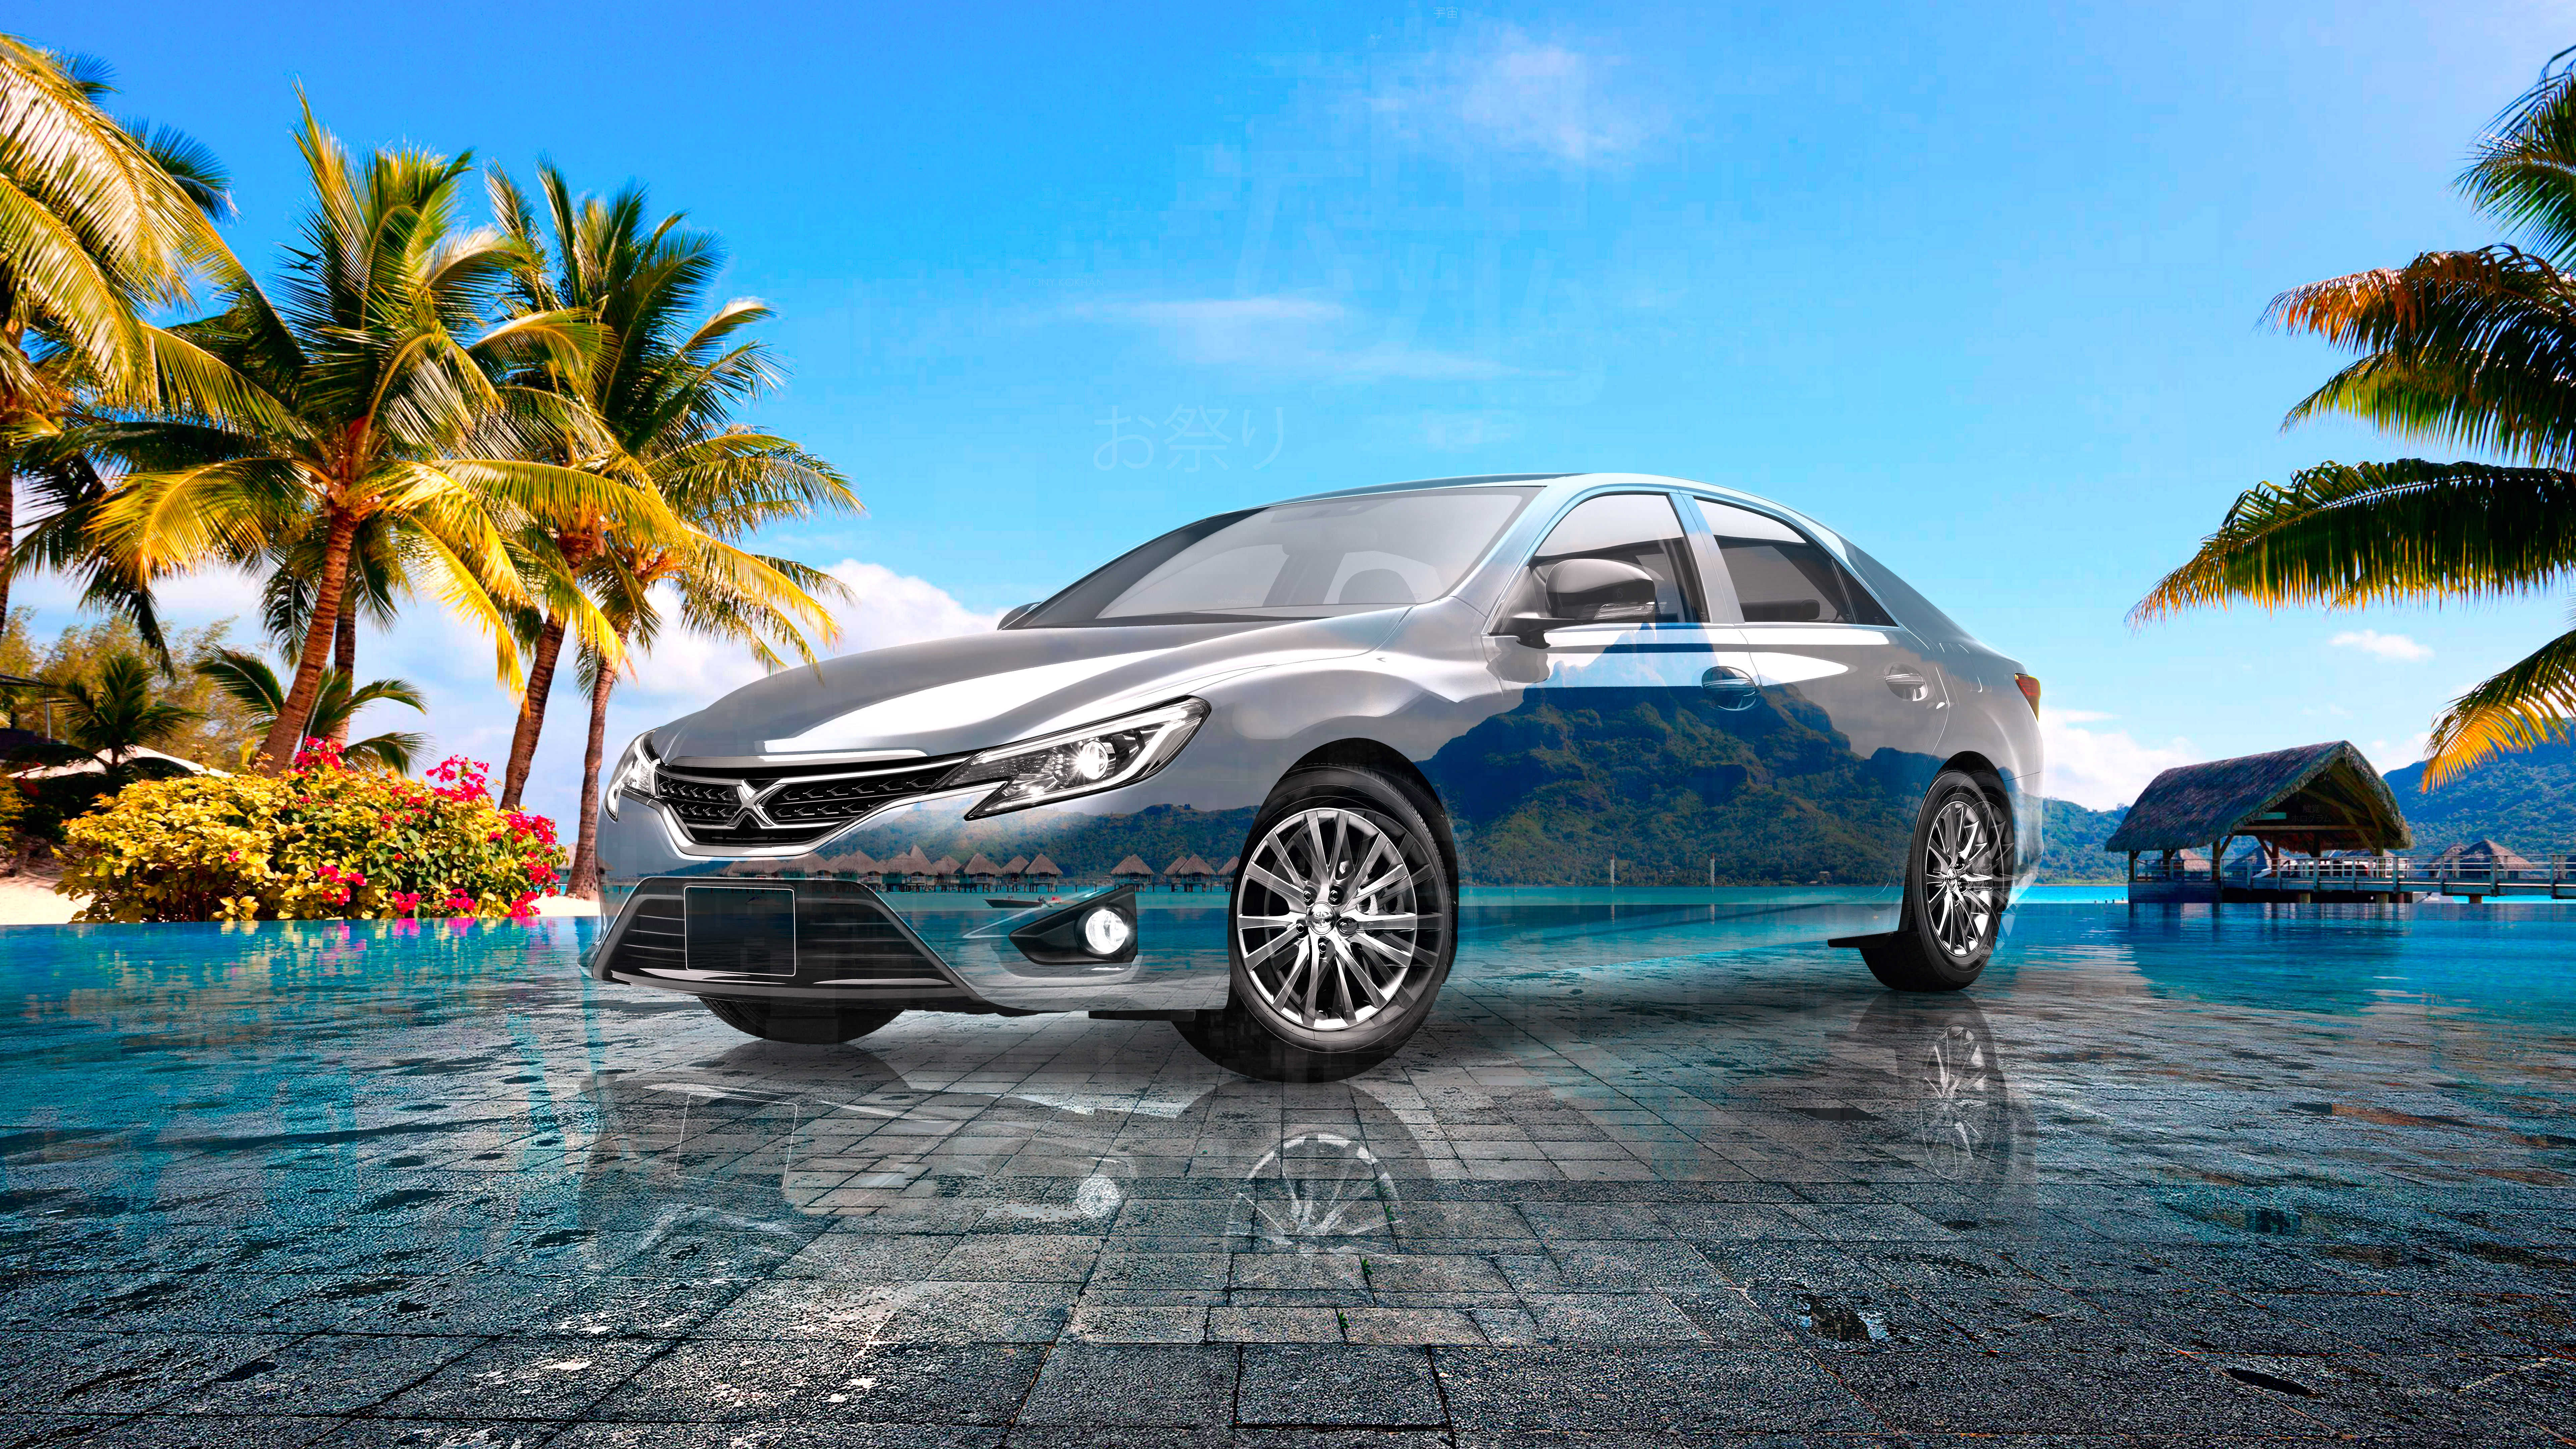 Toyota-MarkX-JDM-Super-Crystal-Festive-Soul-Sea-Palm-Trees-Tactile-Hologram-Art-Car-2021-Multicolors-8K-Wallpapers-design-by-Tony-Kokhan-www.el-tony.com-image